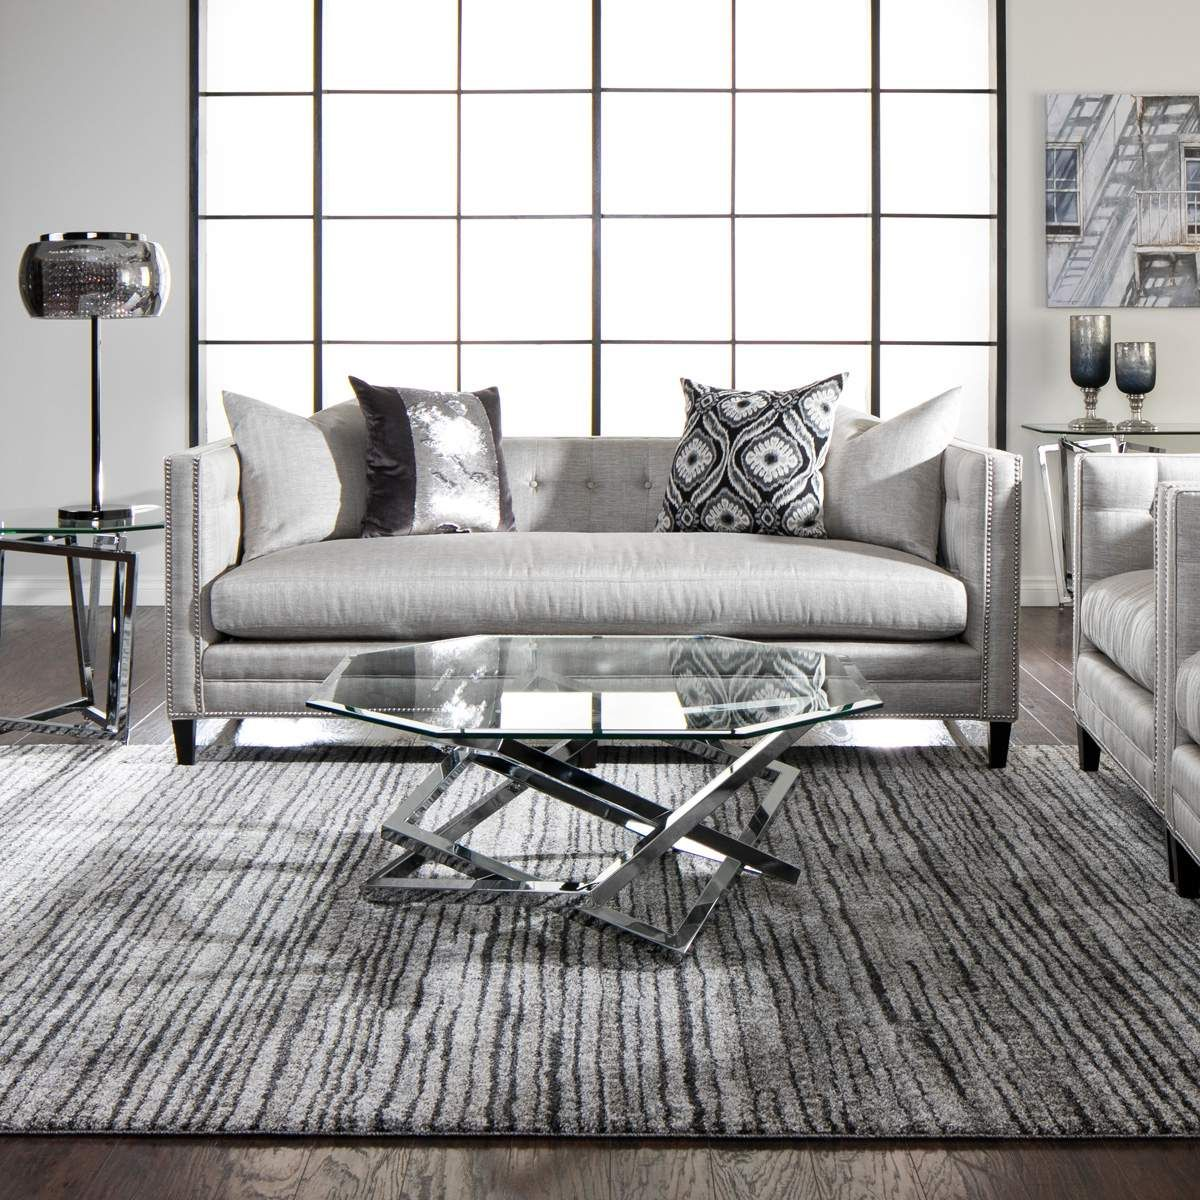 London living room collection grey living room furniture living